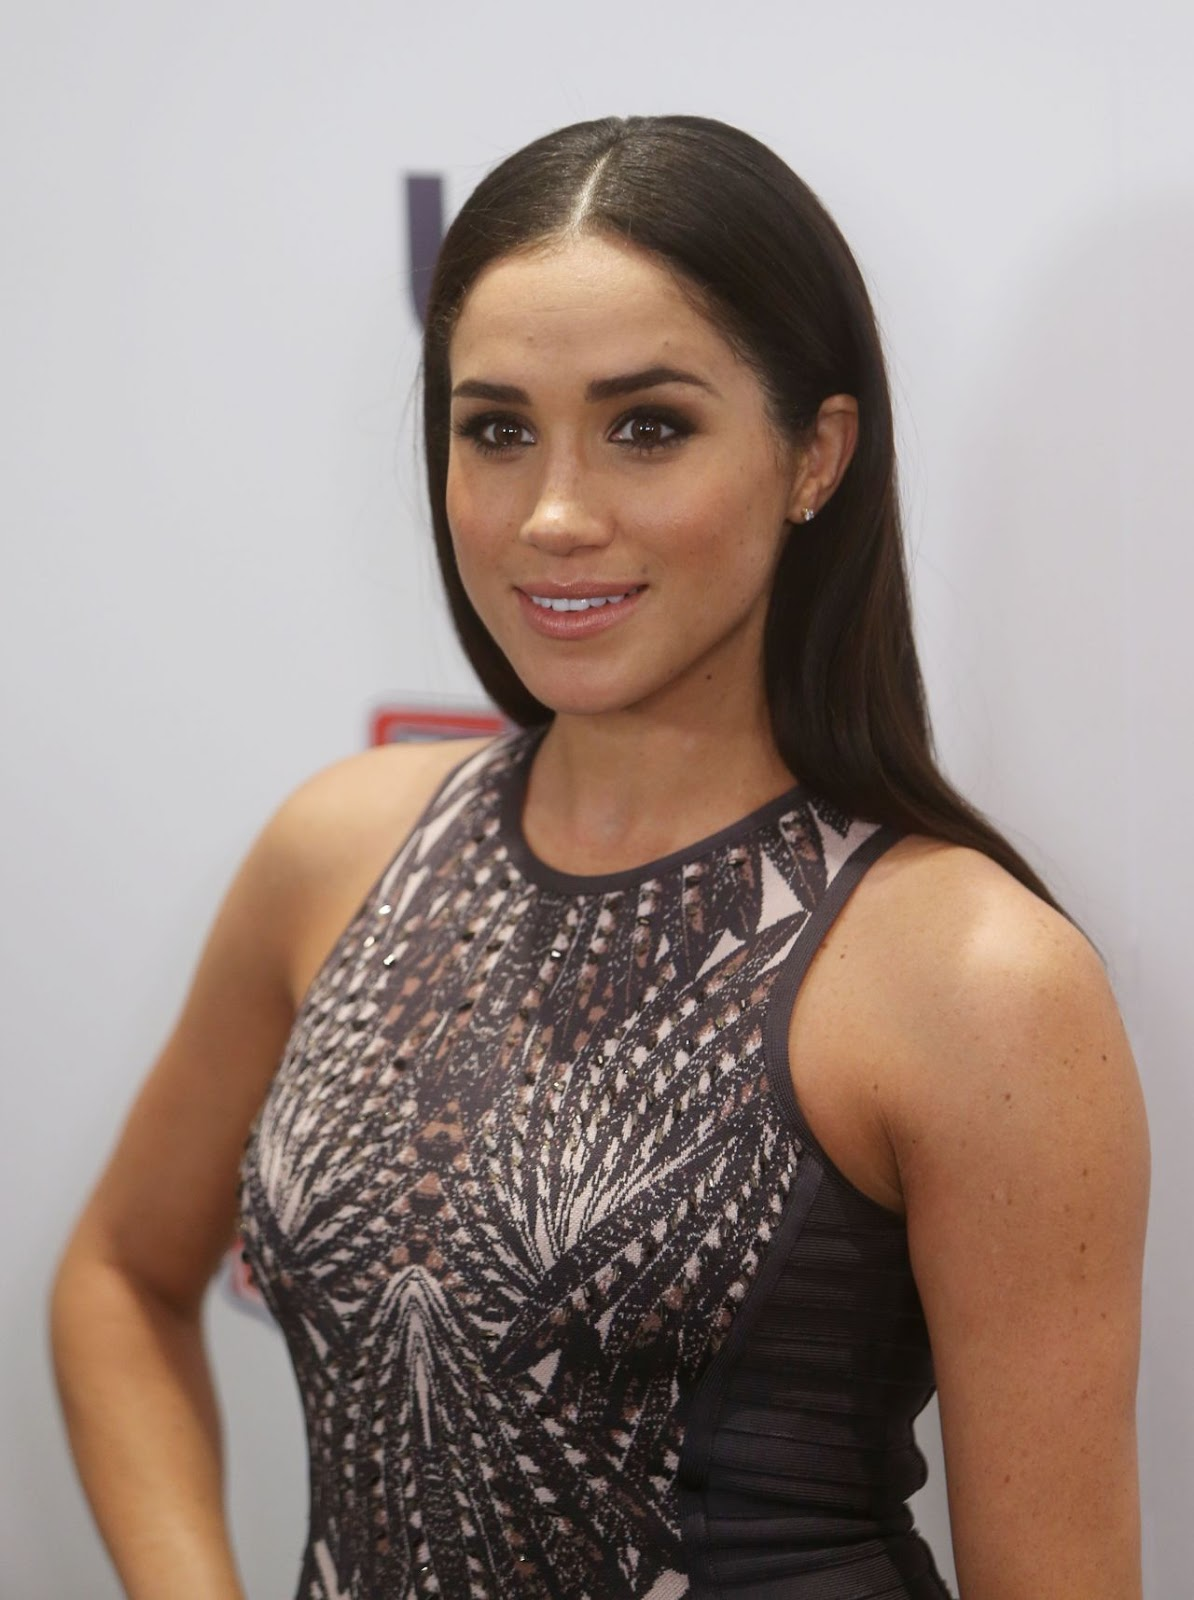 Meghan Markle Hot Sizzling Actress Hd Wallpapers Hd Wallpapers High Definition Celebrity